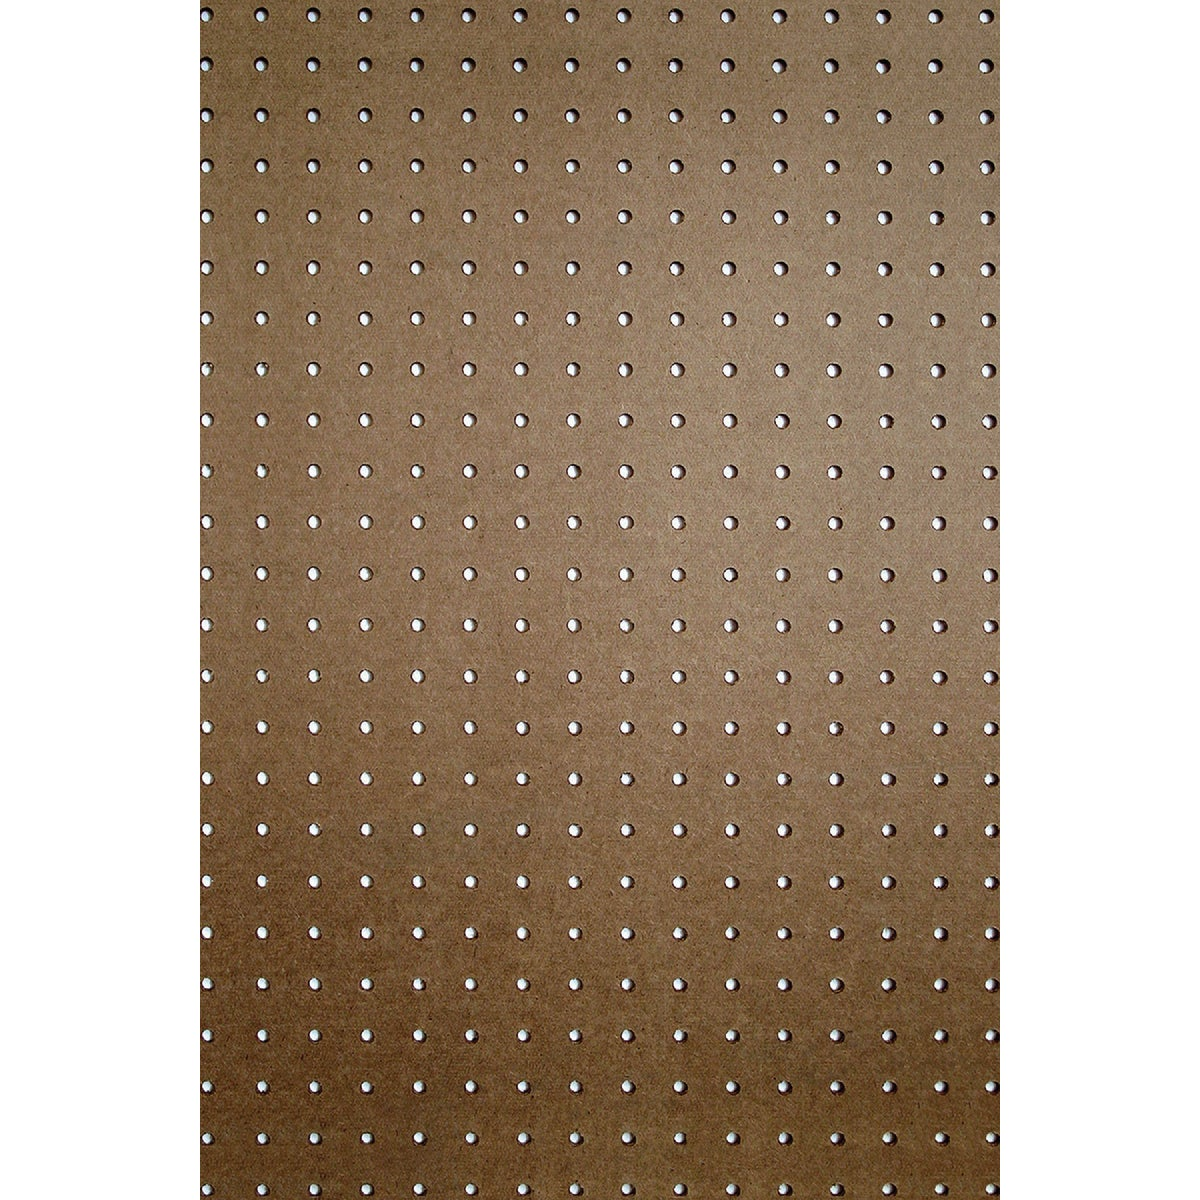 "1/8""4'X8' TMPRD PEGBOARD - PTS125 by Dpi Decorative Panel"